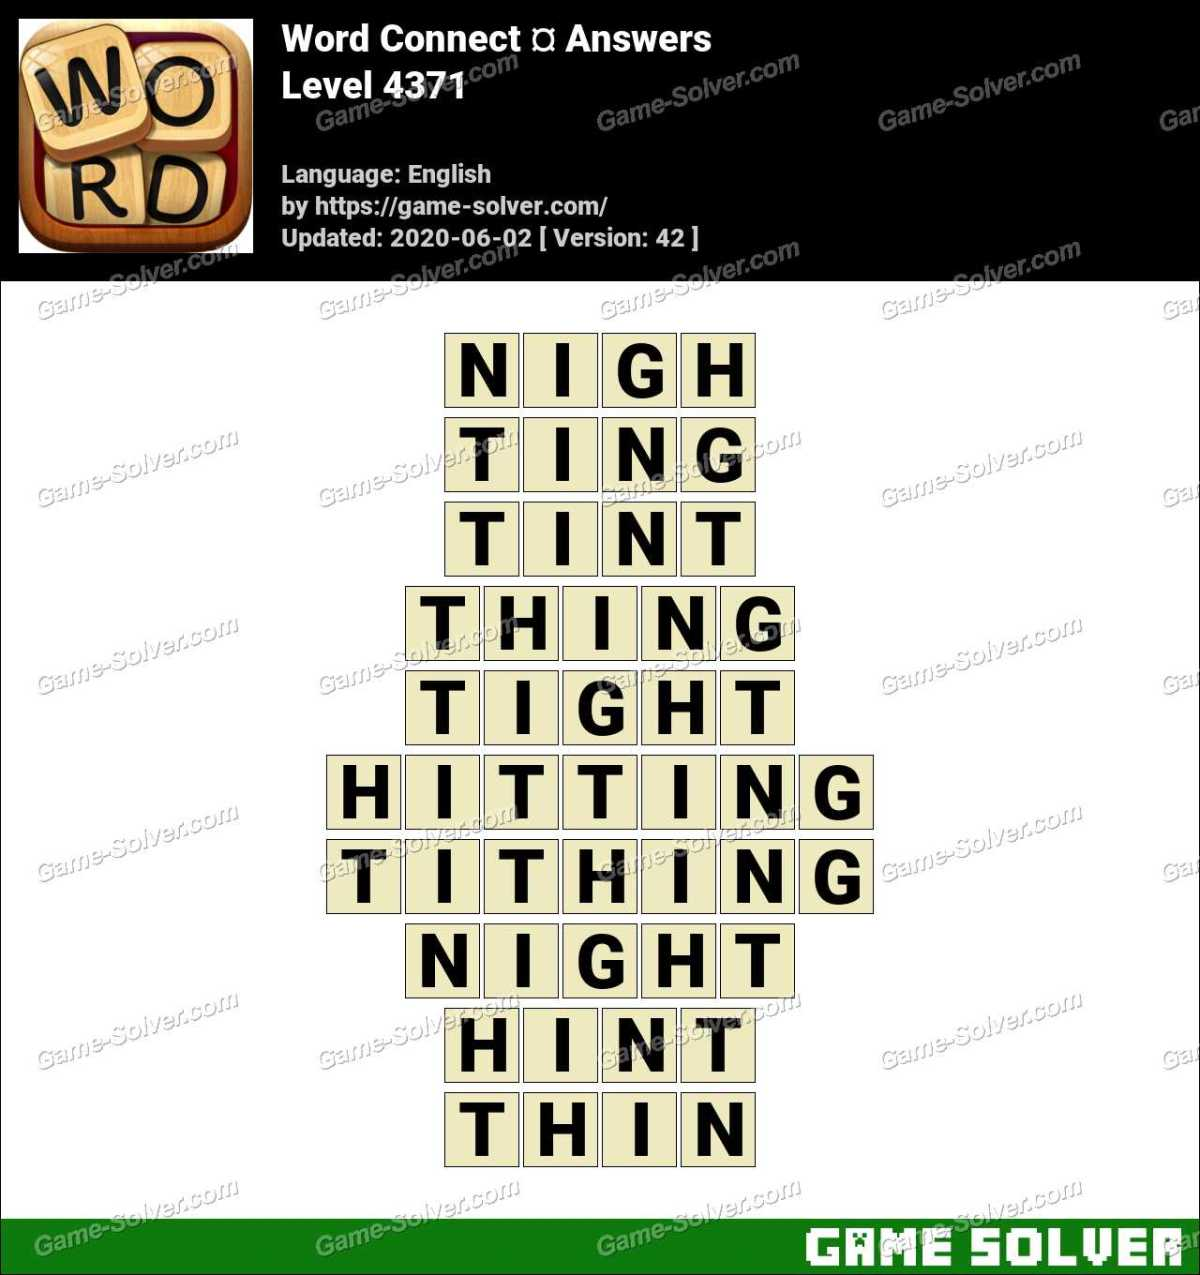 Word Connect Level 4371 Answers